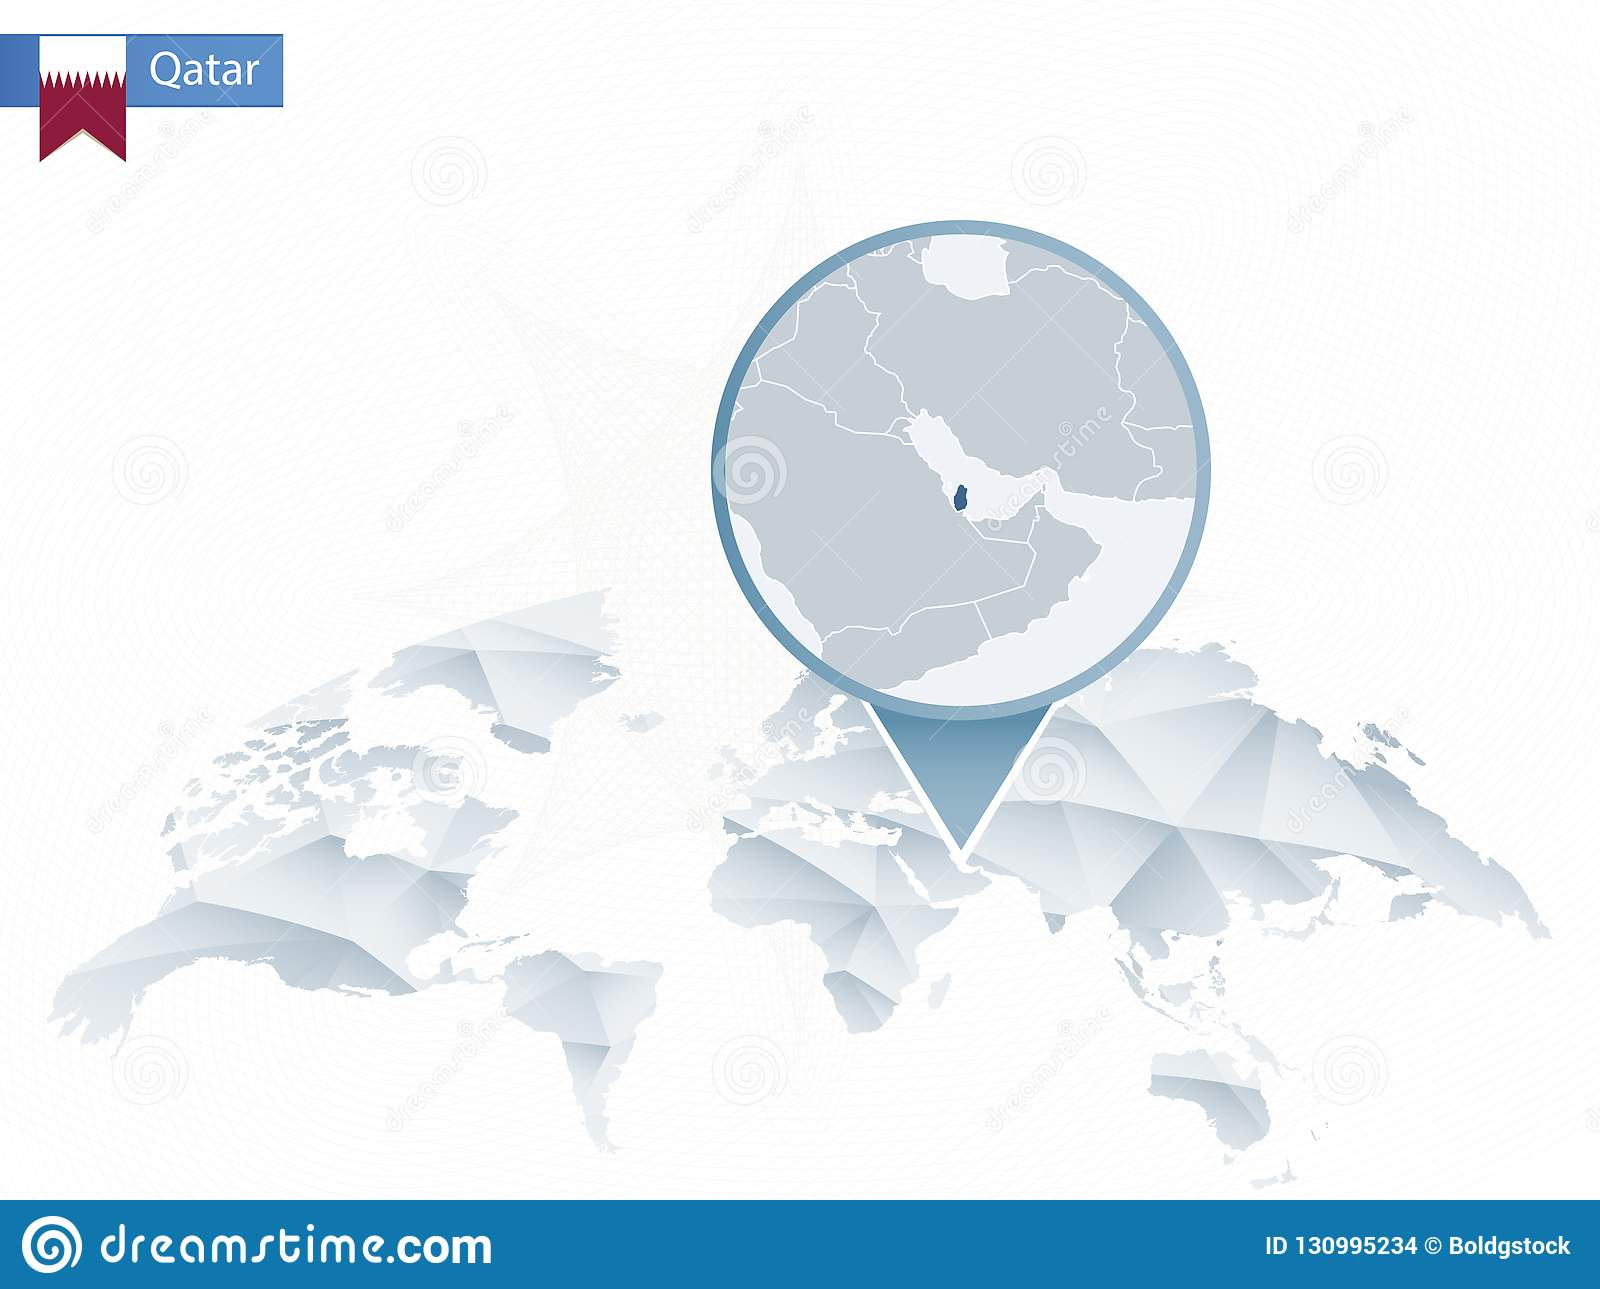 Abstract Rounded World Map With Pinned Detailed Qatar Map ...